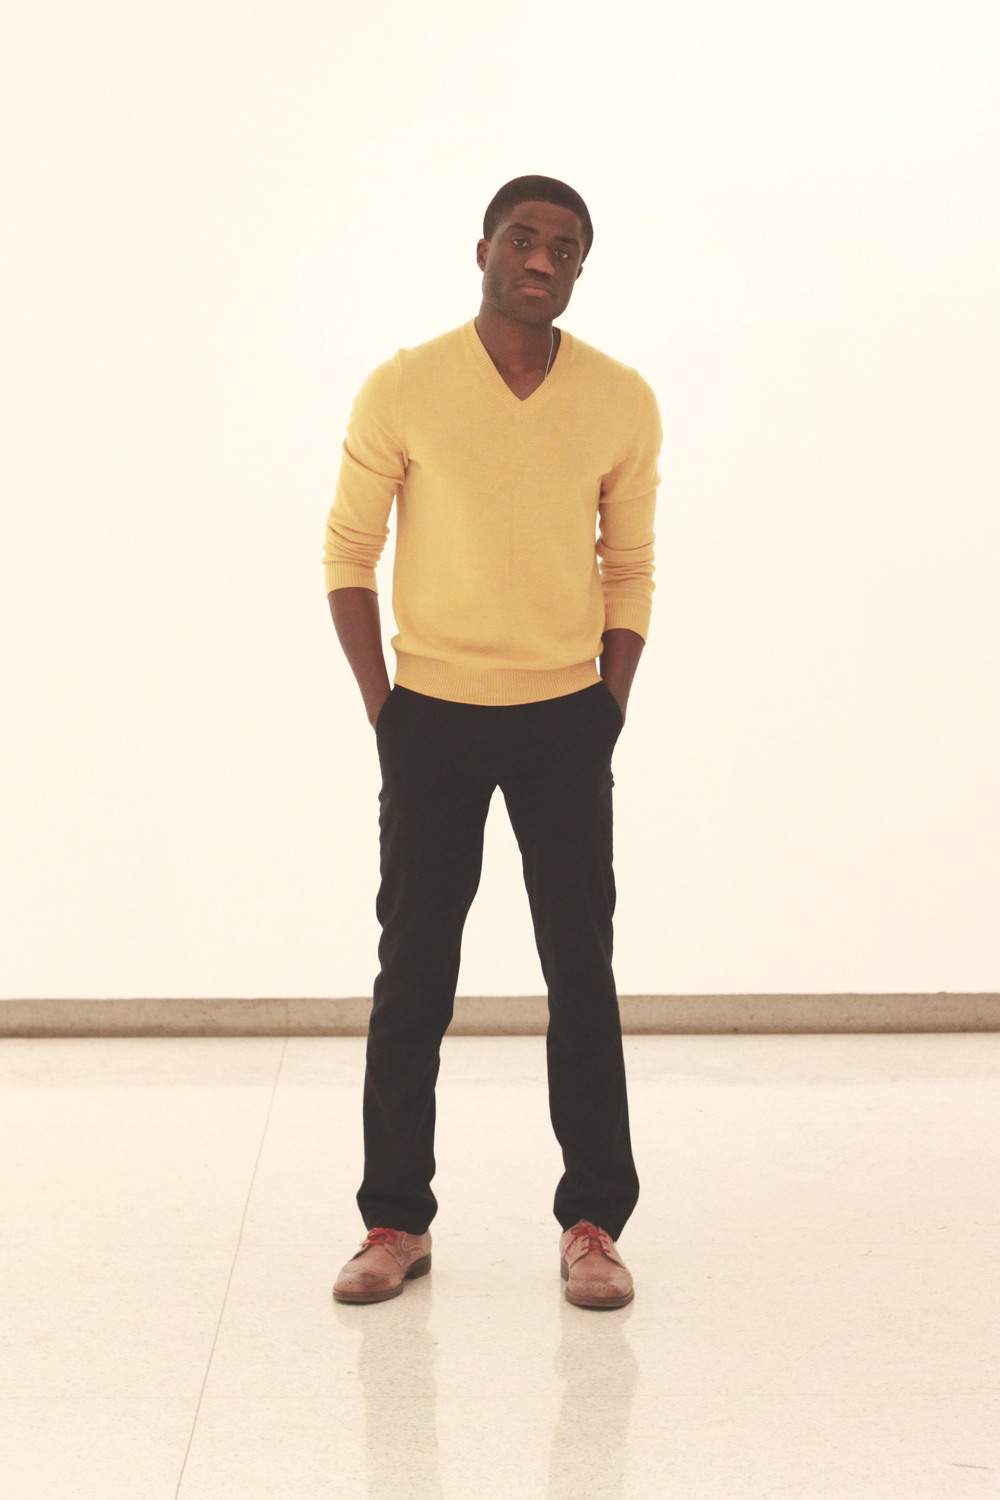 KOJO | spotted at Walker Art Center